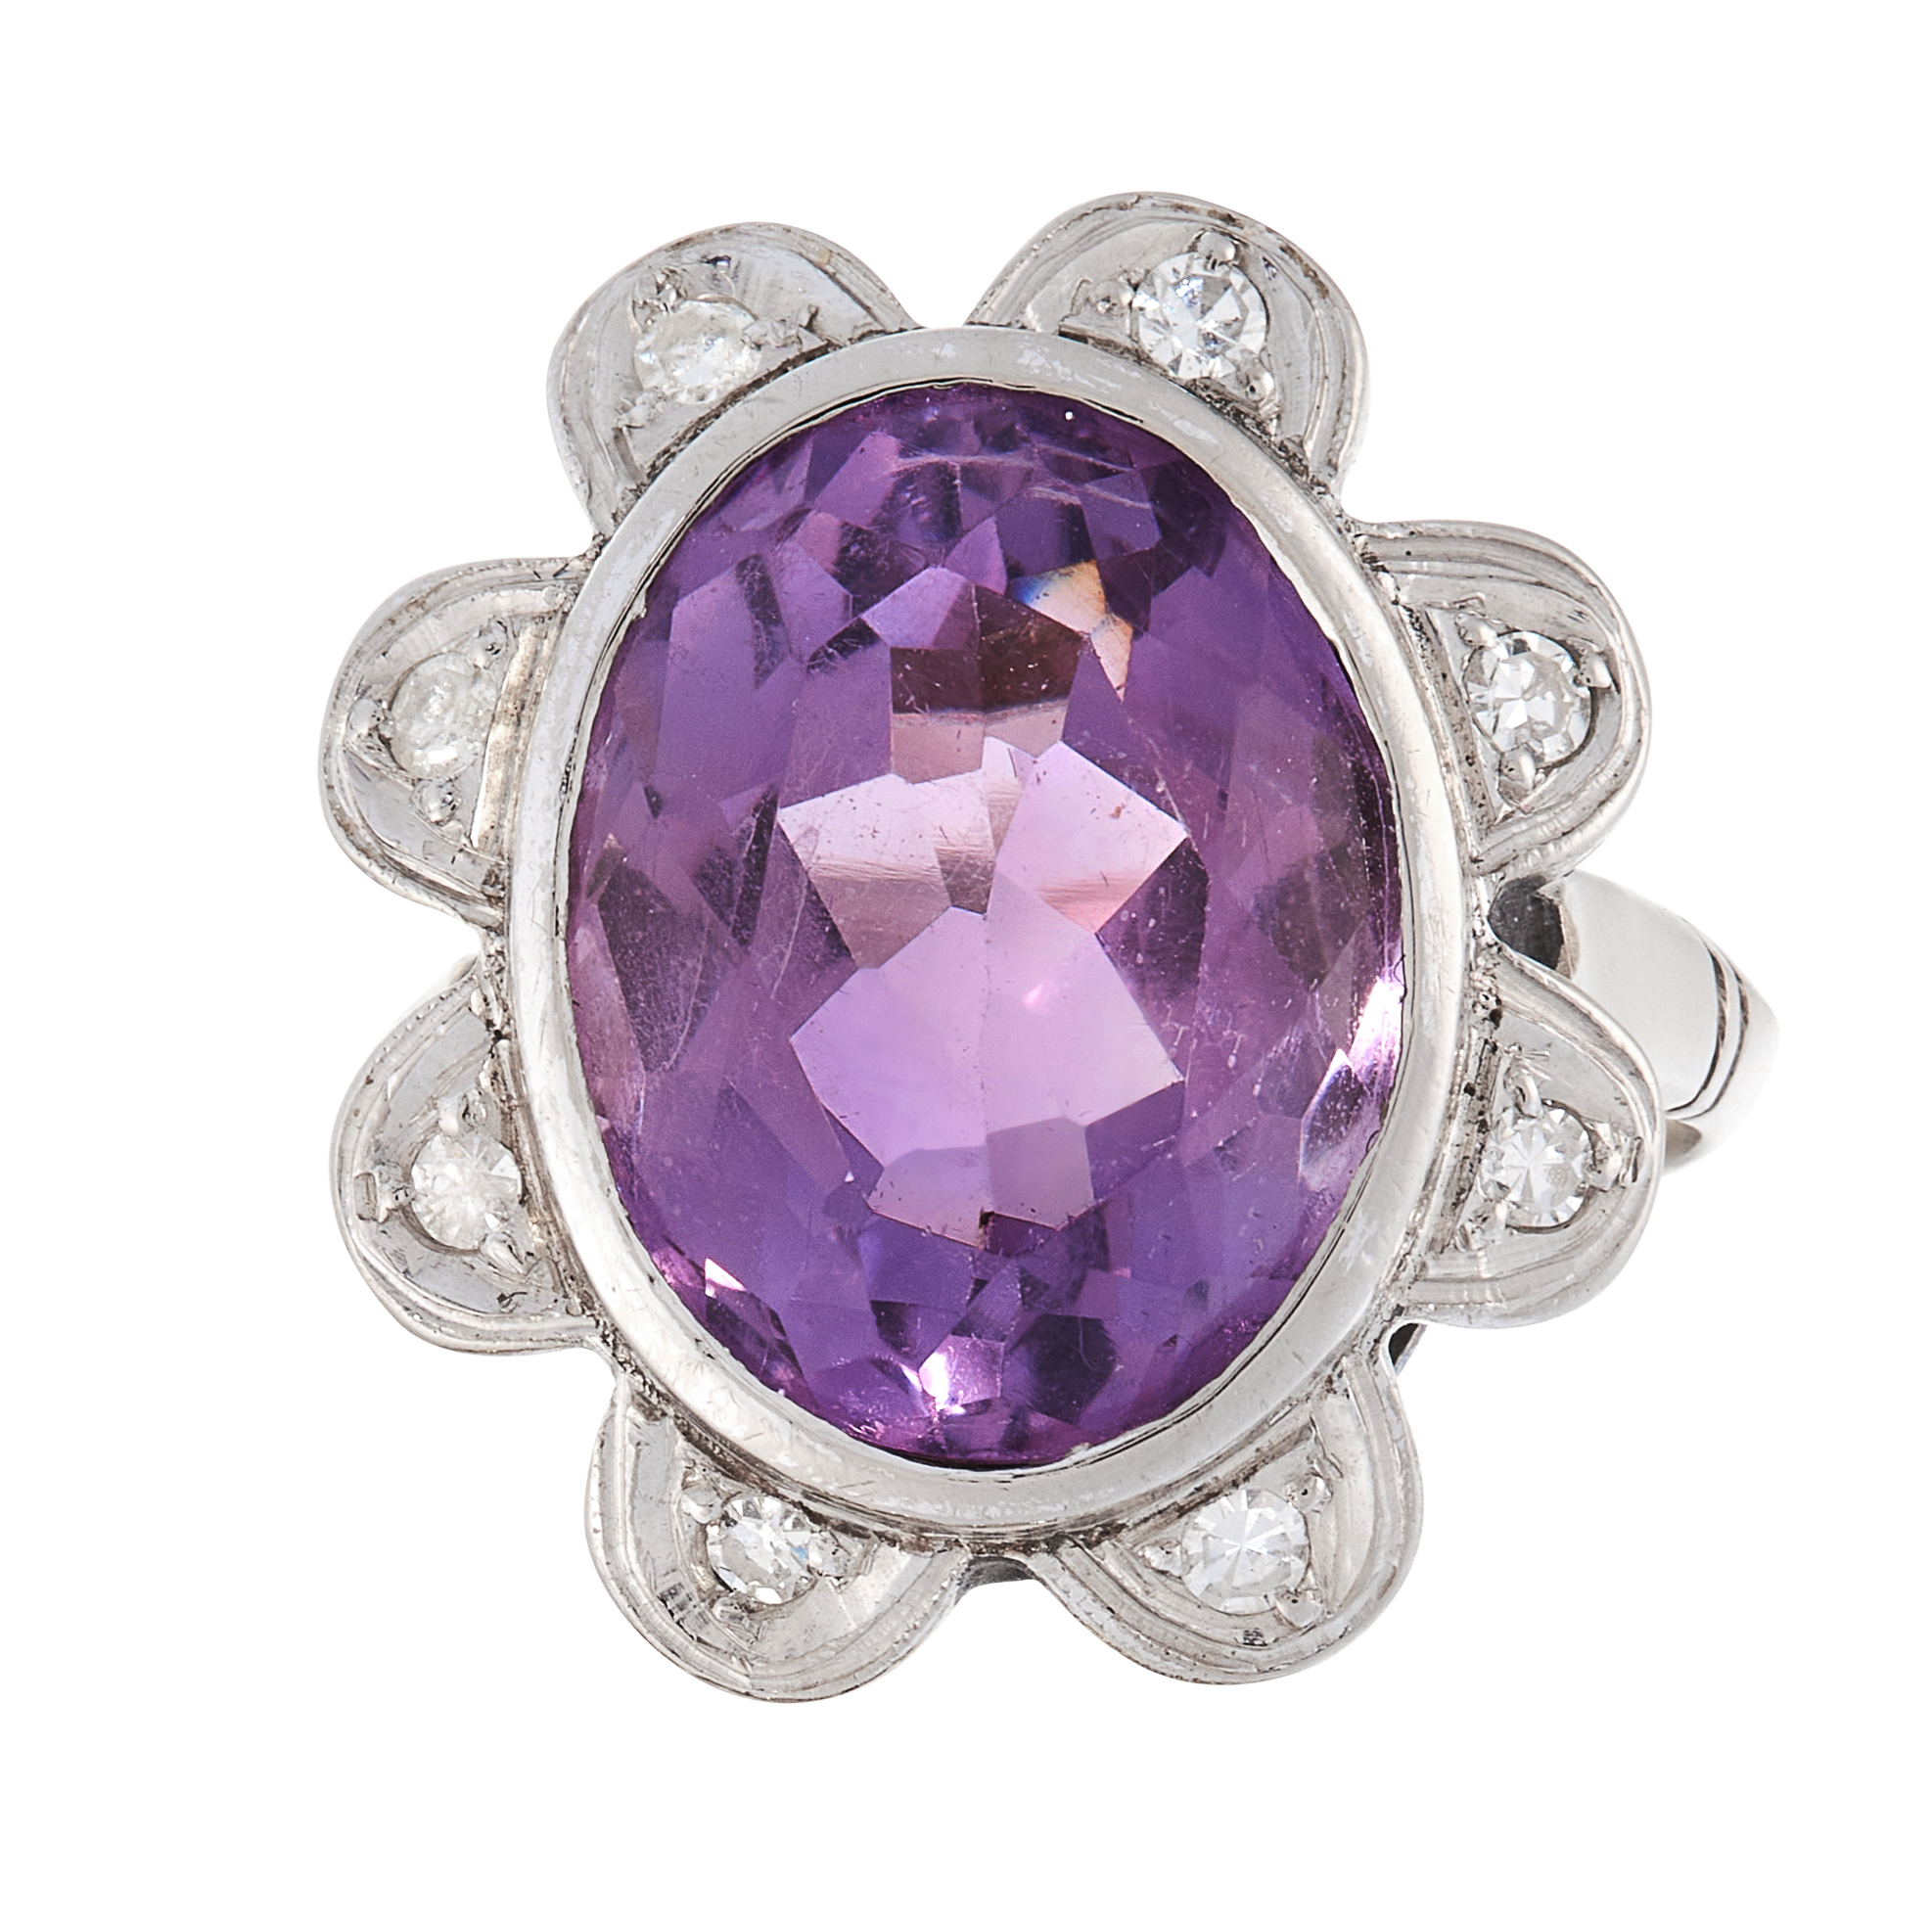 AN AMETHYST AND DIAMOND DRESS RING in white gold, set with an oval cut amethyst within a scalloped